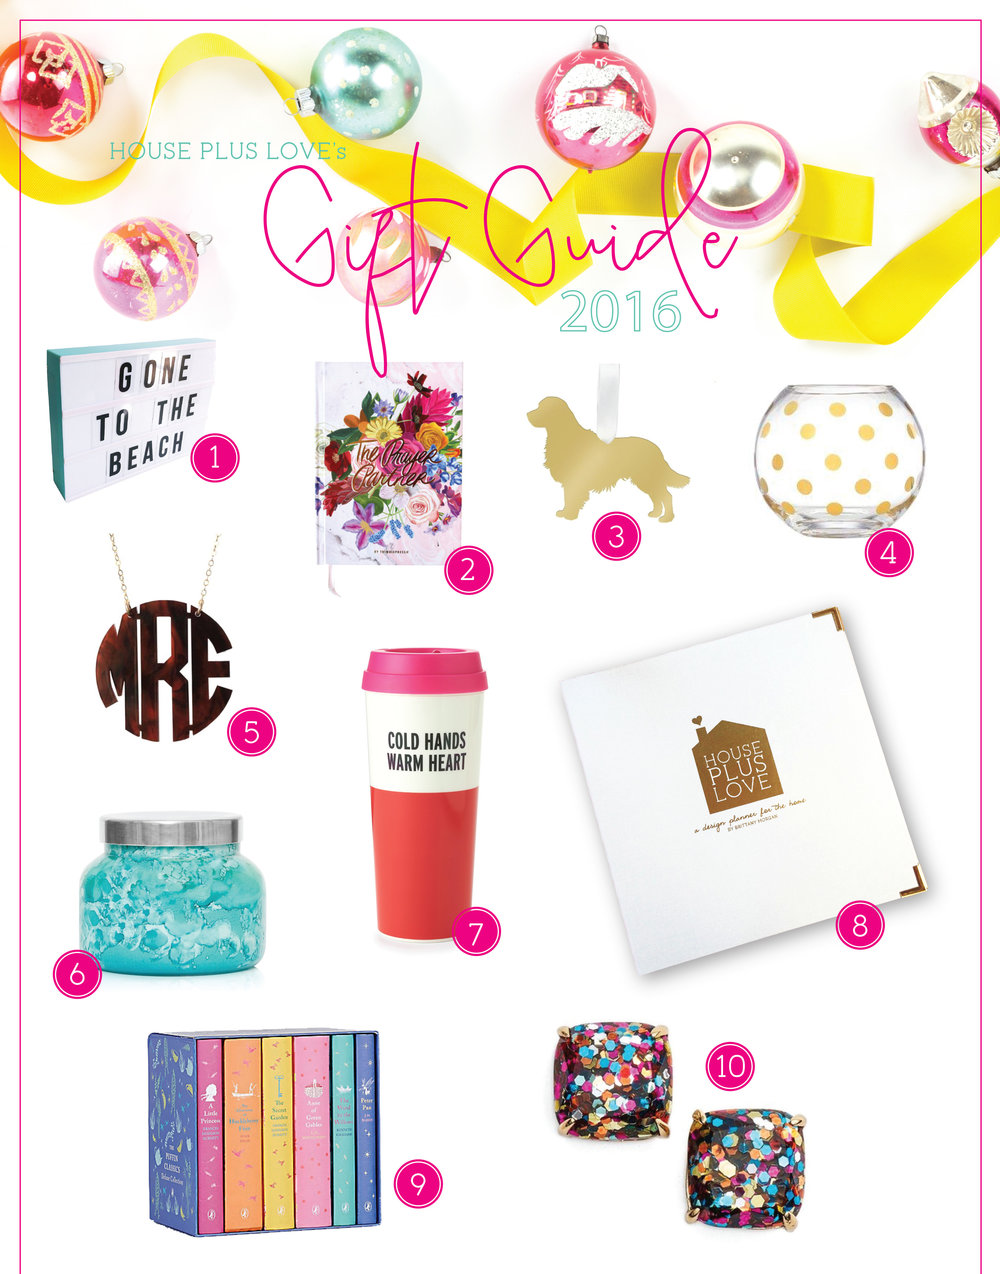 House Plus Love Gift Guide 2016 page 1